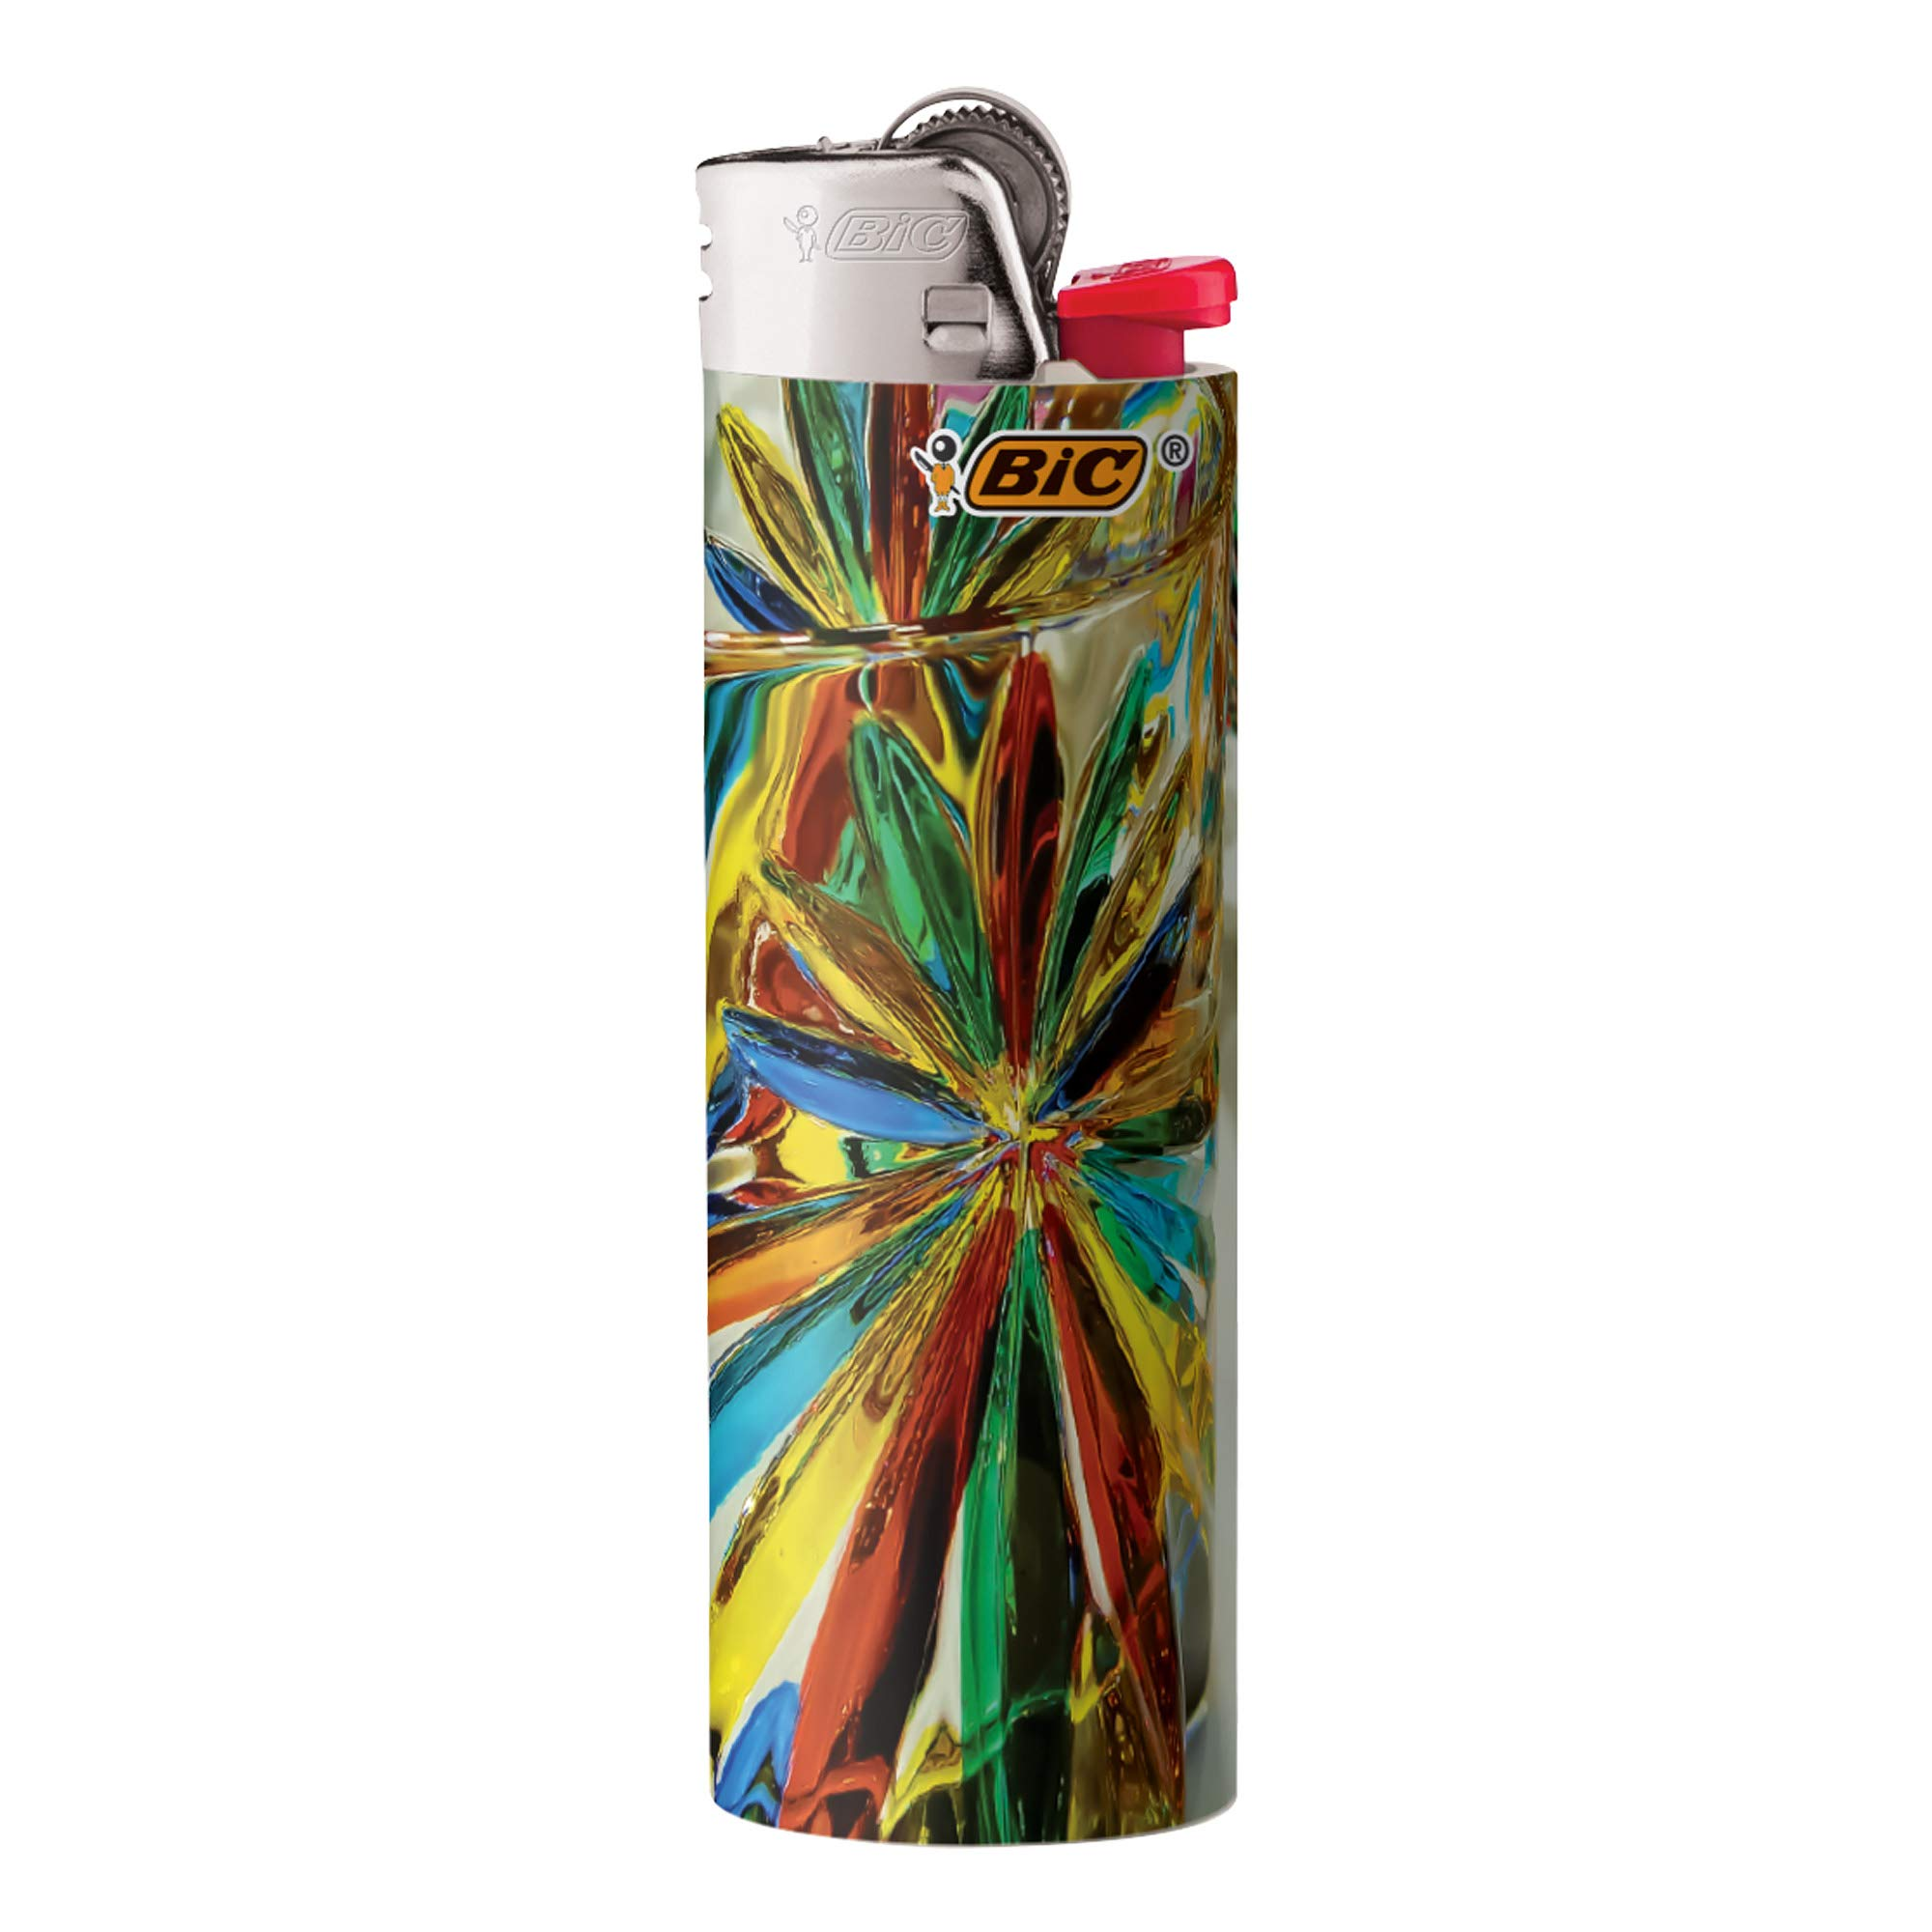 BIC Special Edition Blown Glass Series Lighters, Set of 8 Lighters by BIC (Image #3)